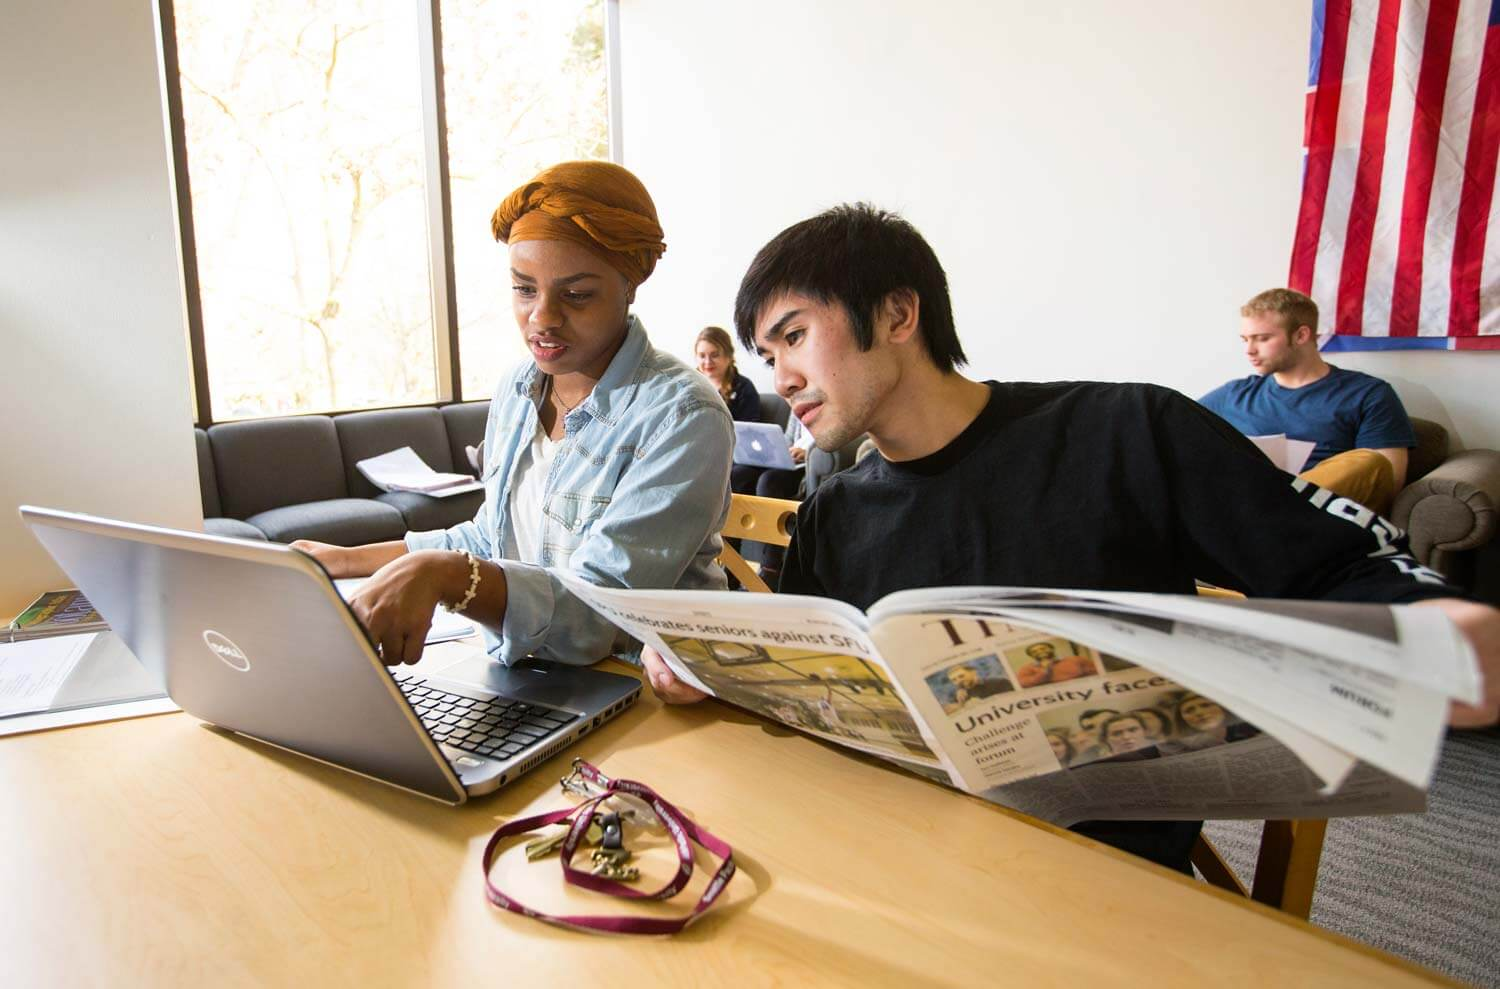 Students looking at laptop and newspaper